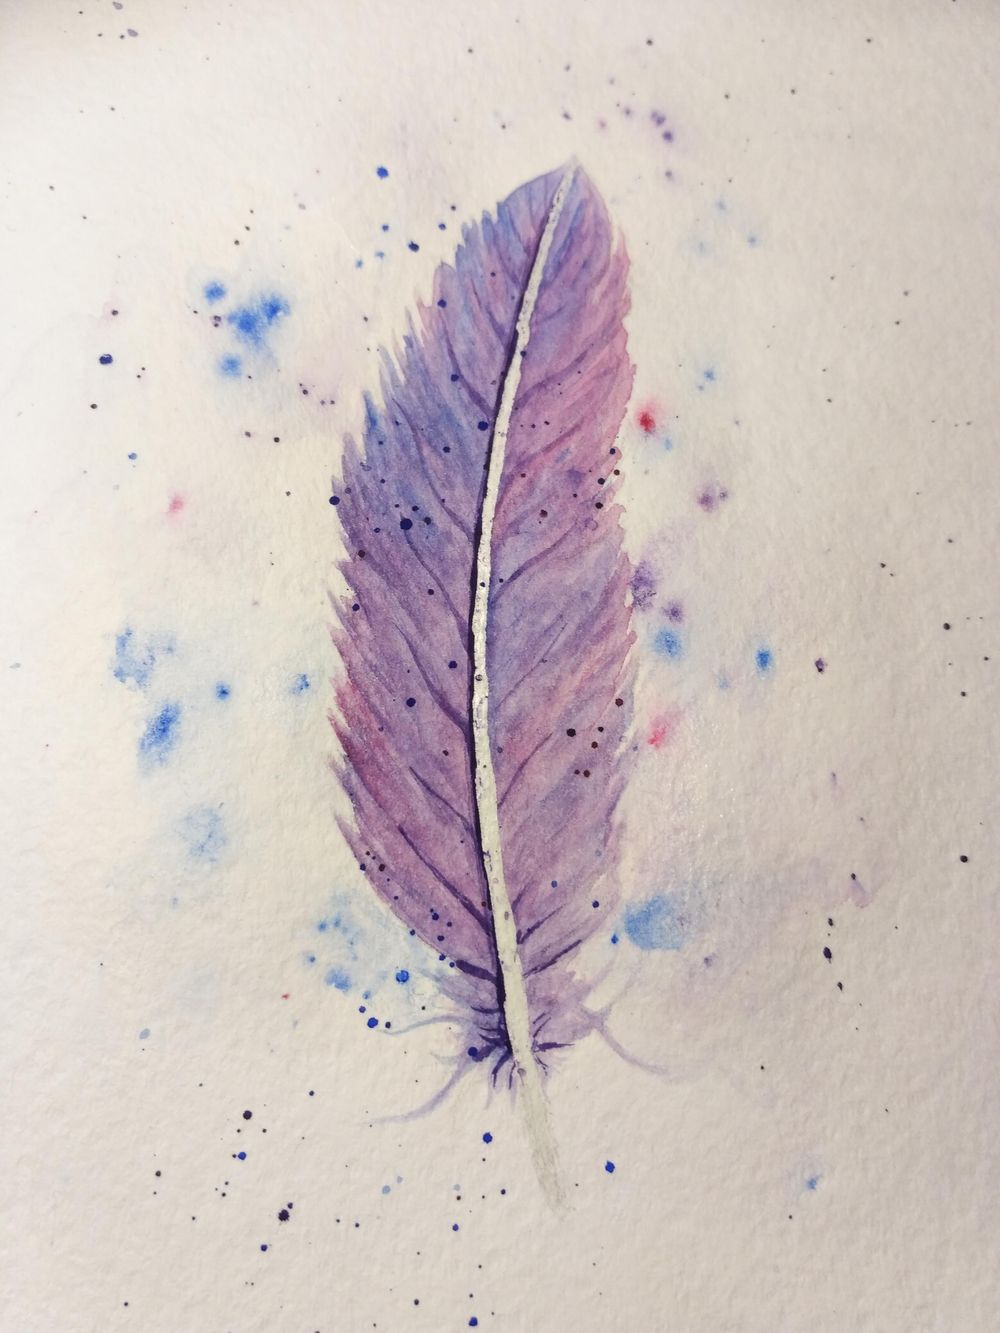 Magical Watercolor - image 2 - student project